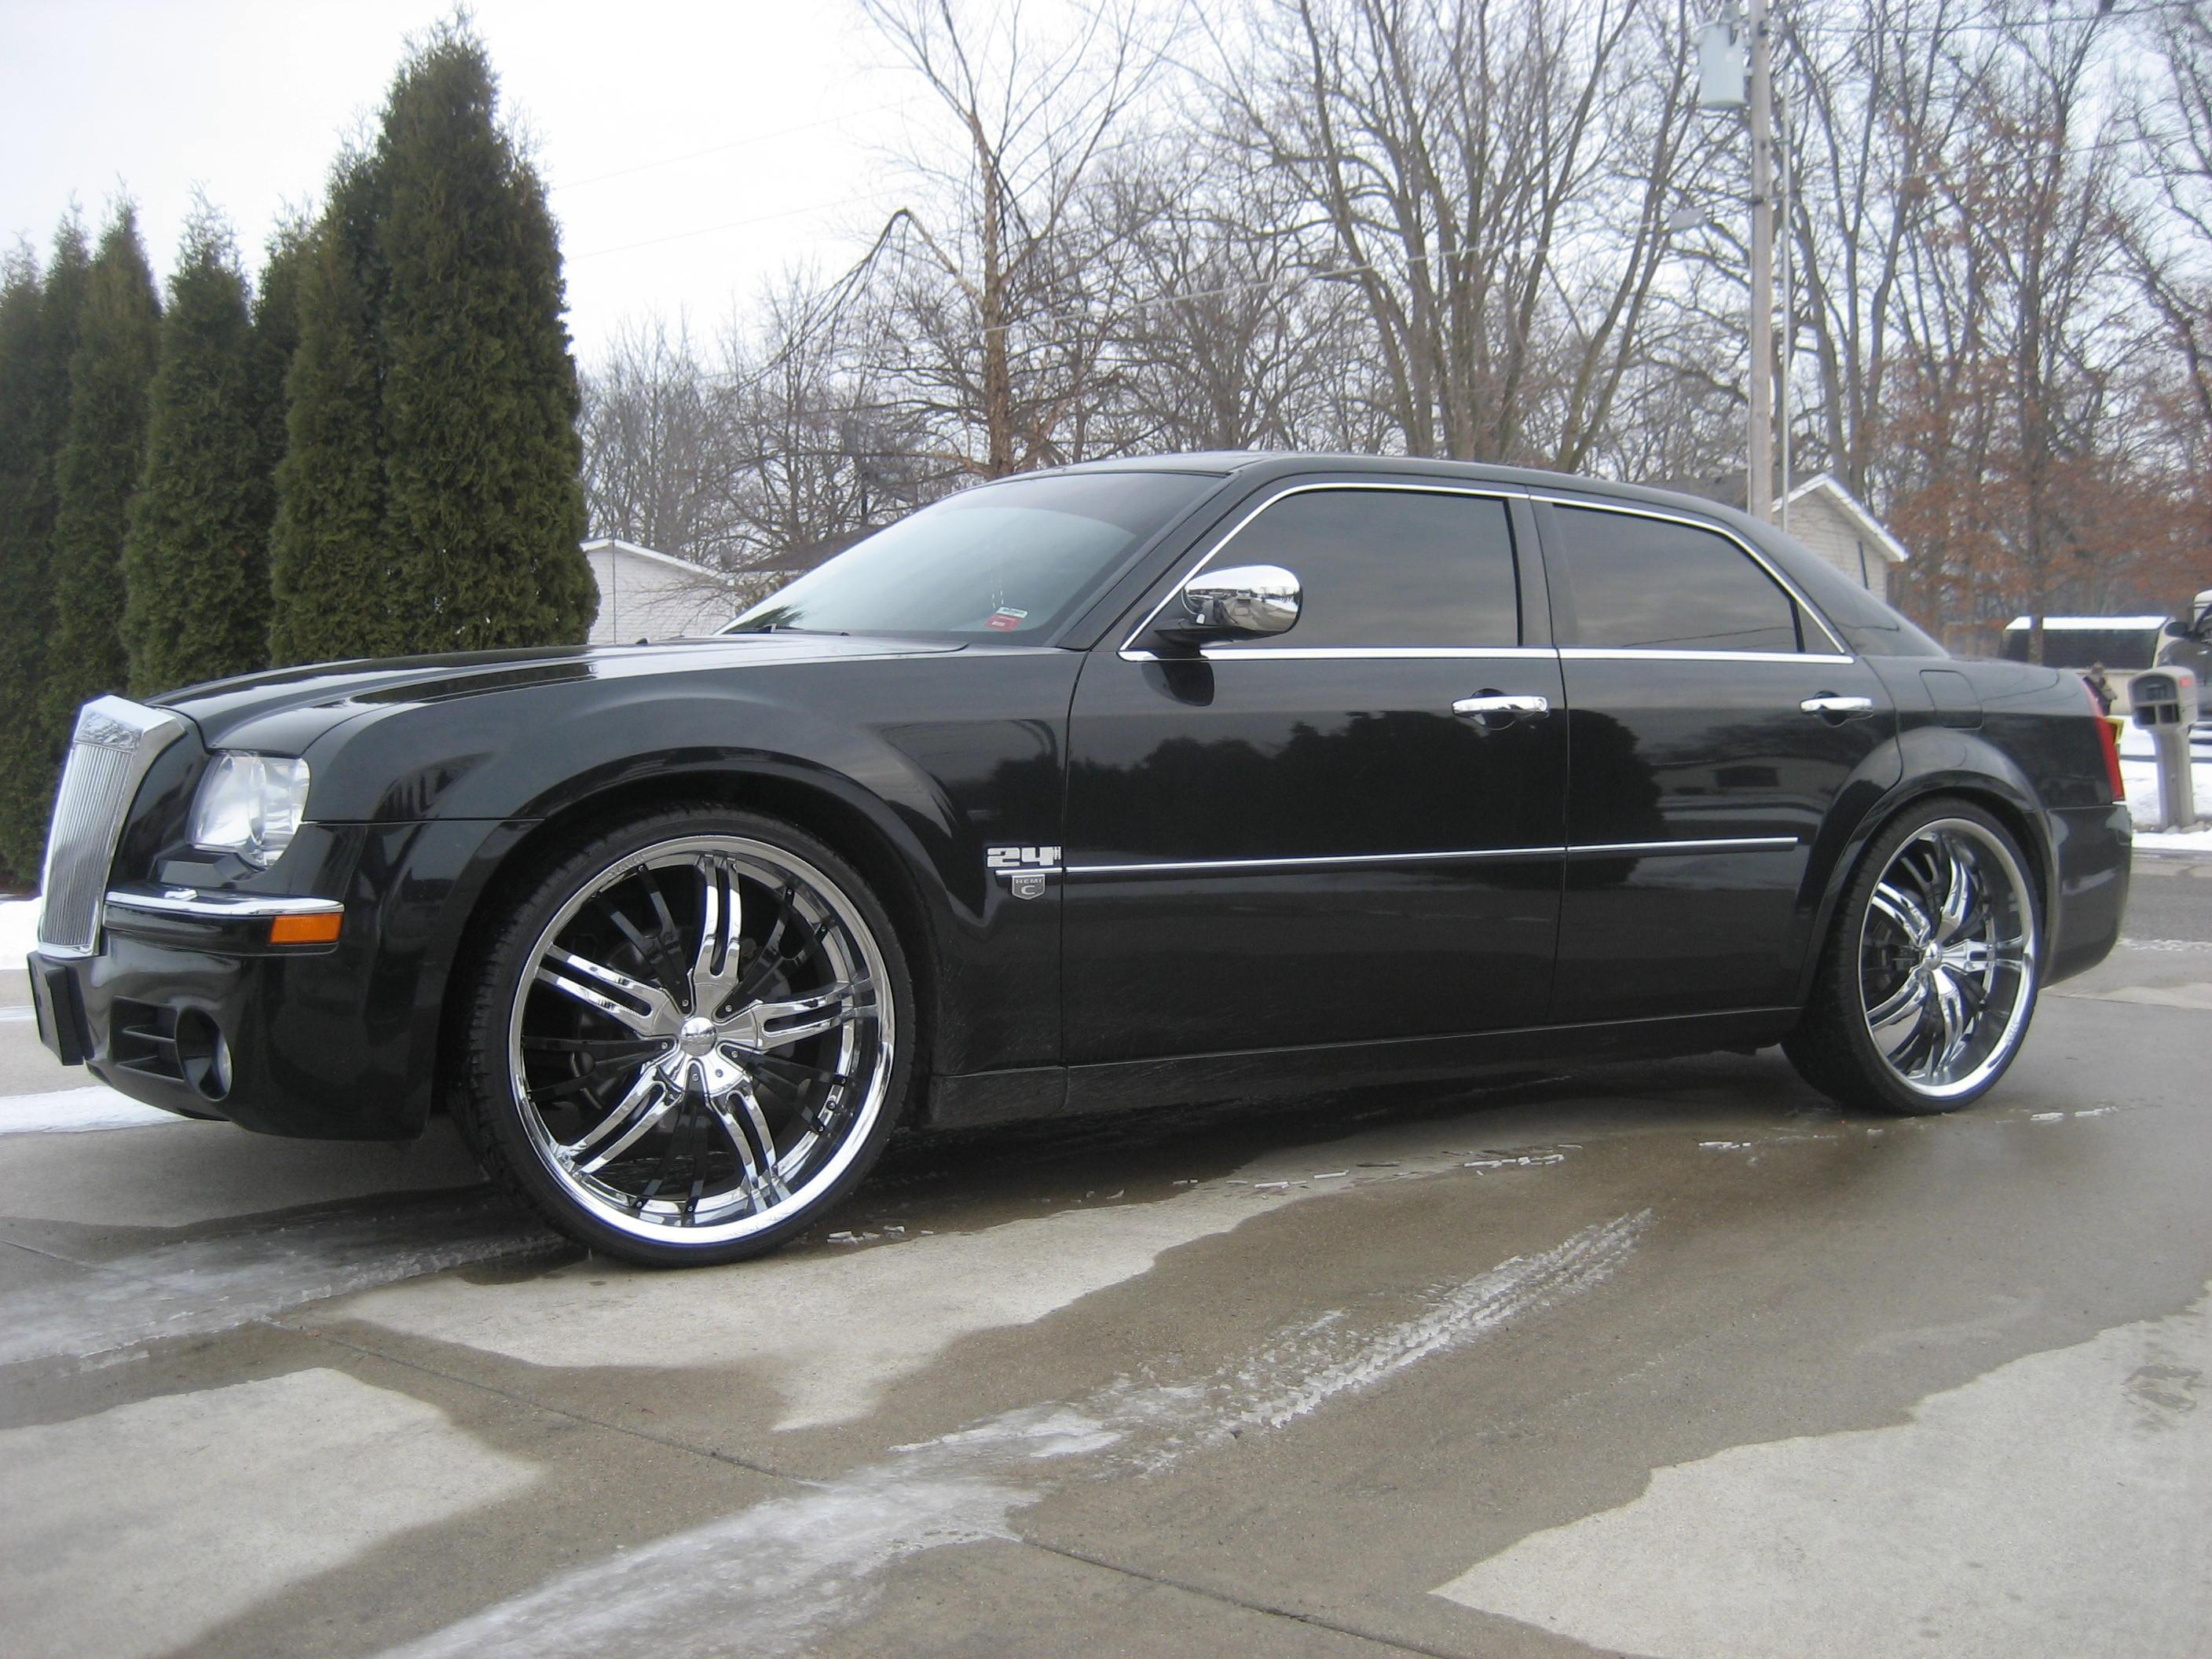 Cesar2371 2005 Chrysler 300300C Sedan 4D Specs, Photos, Modification ...